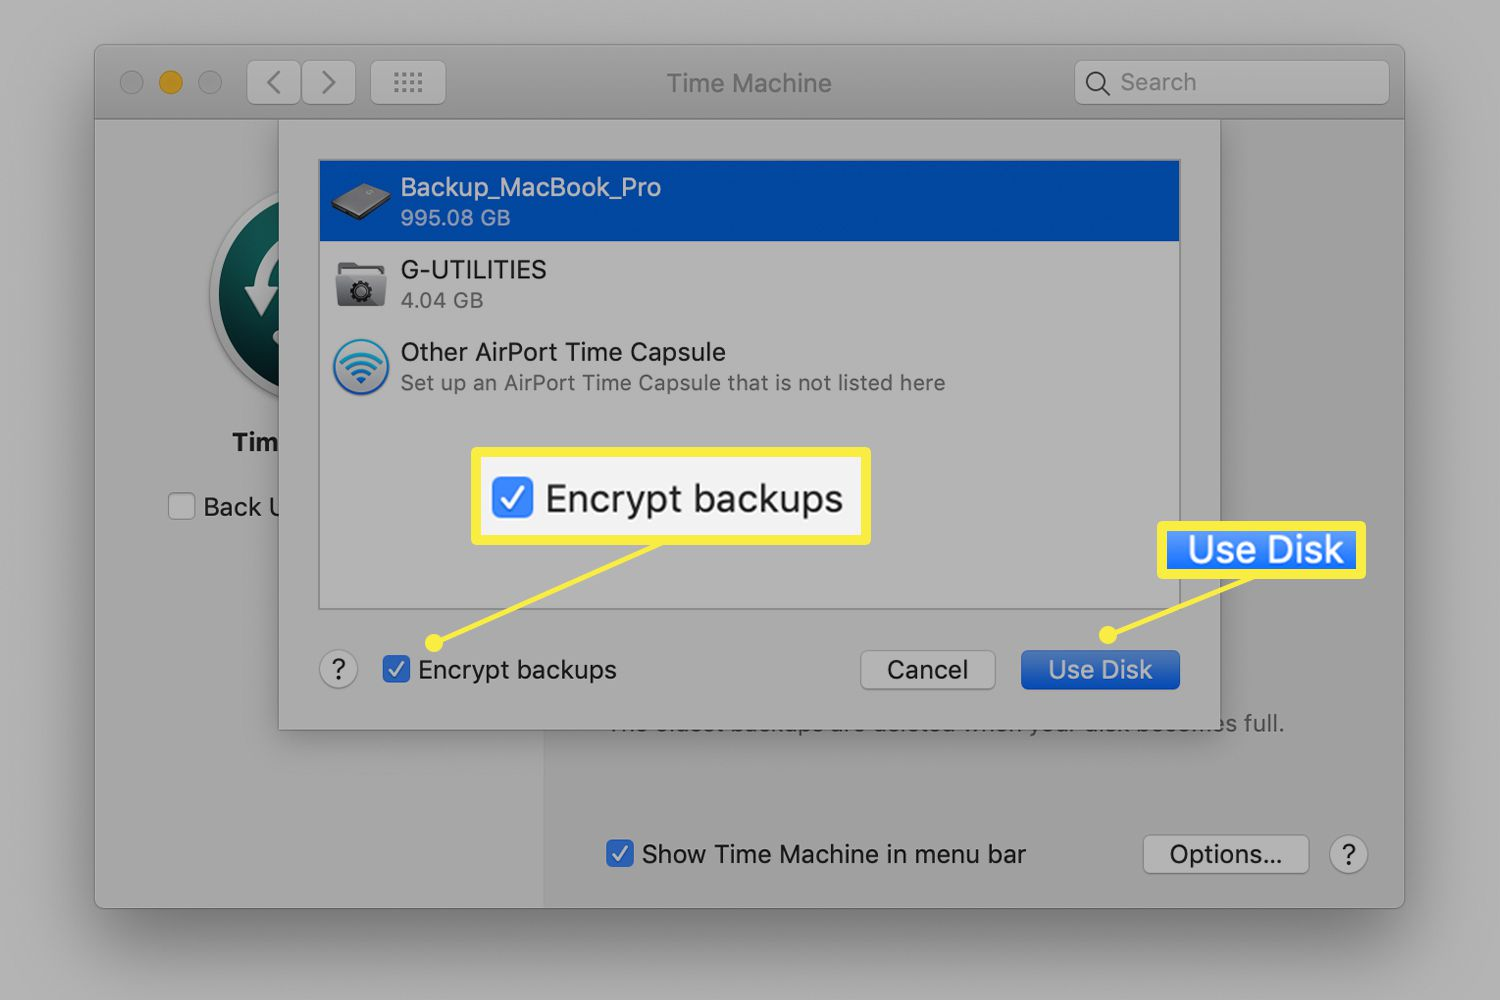 Time Machine preference for enabling encryption